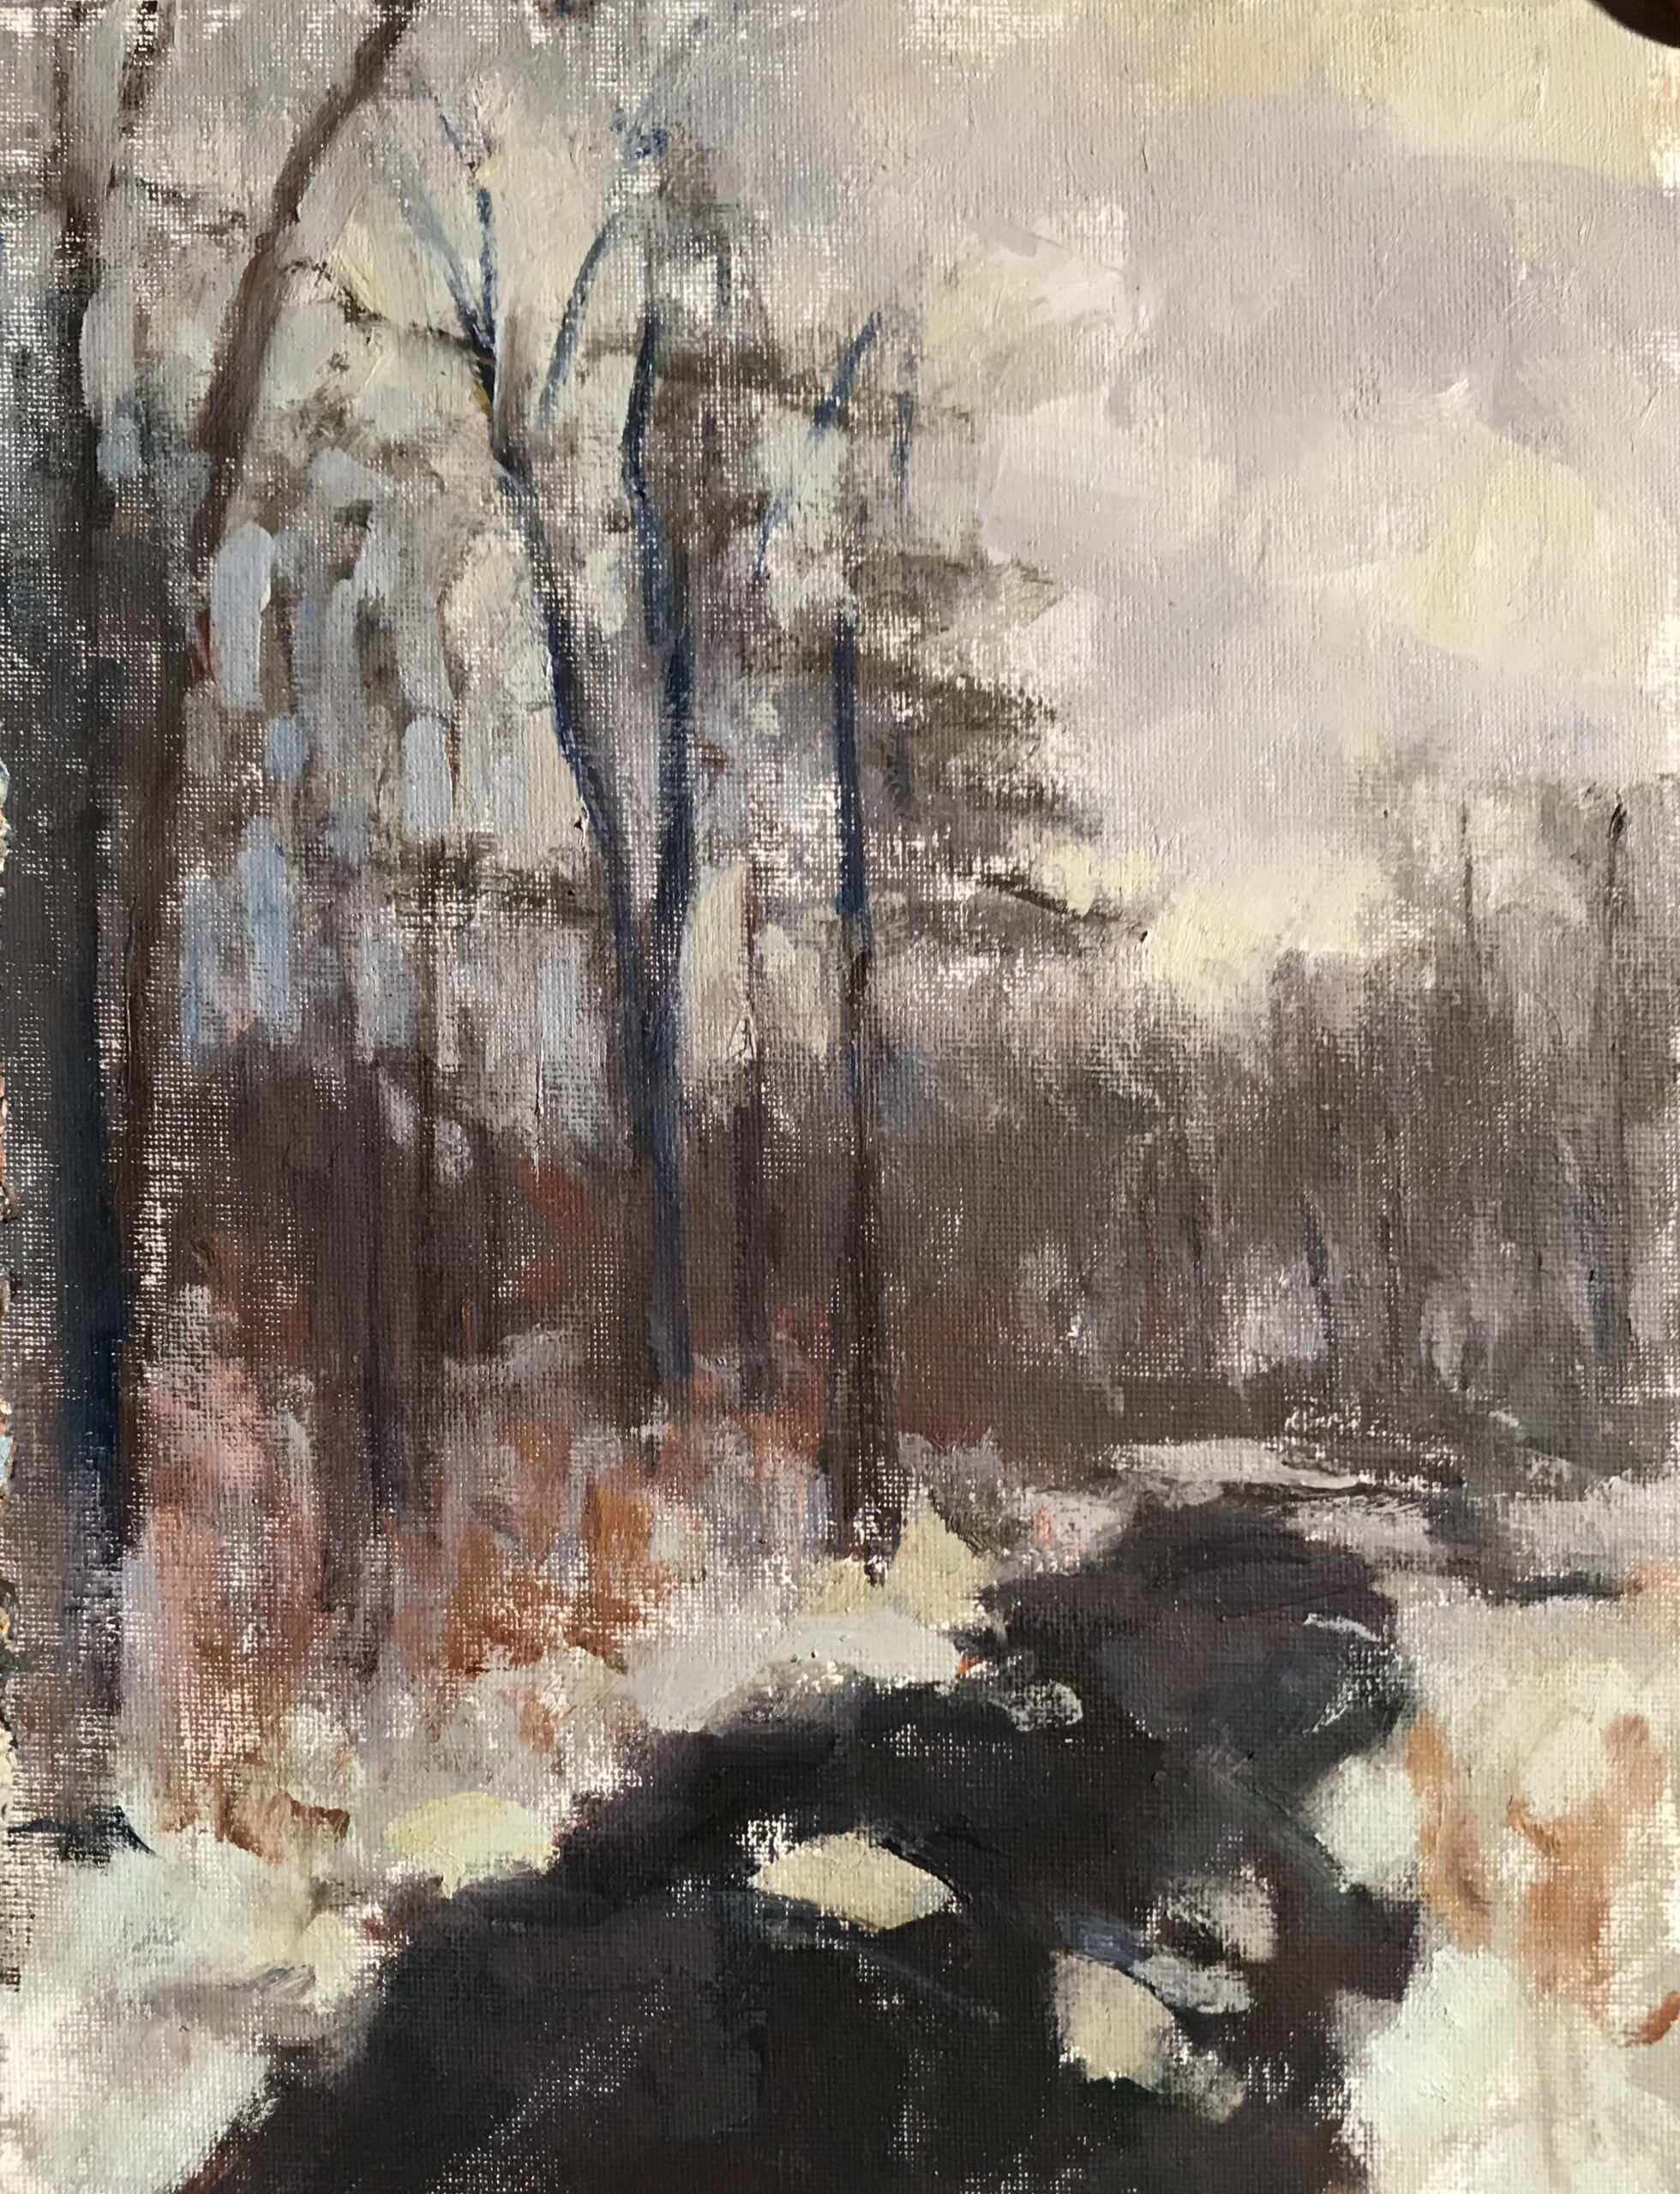 Gray Winter Day, Oil on Canvas on Panel, 12 x 9 Inches, by Susan Grisell, $200